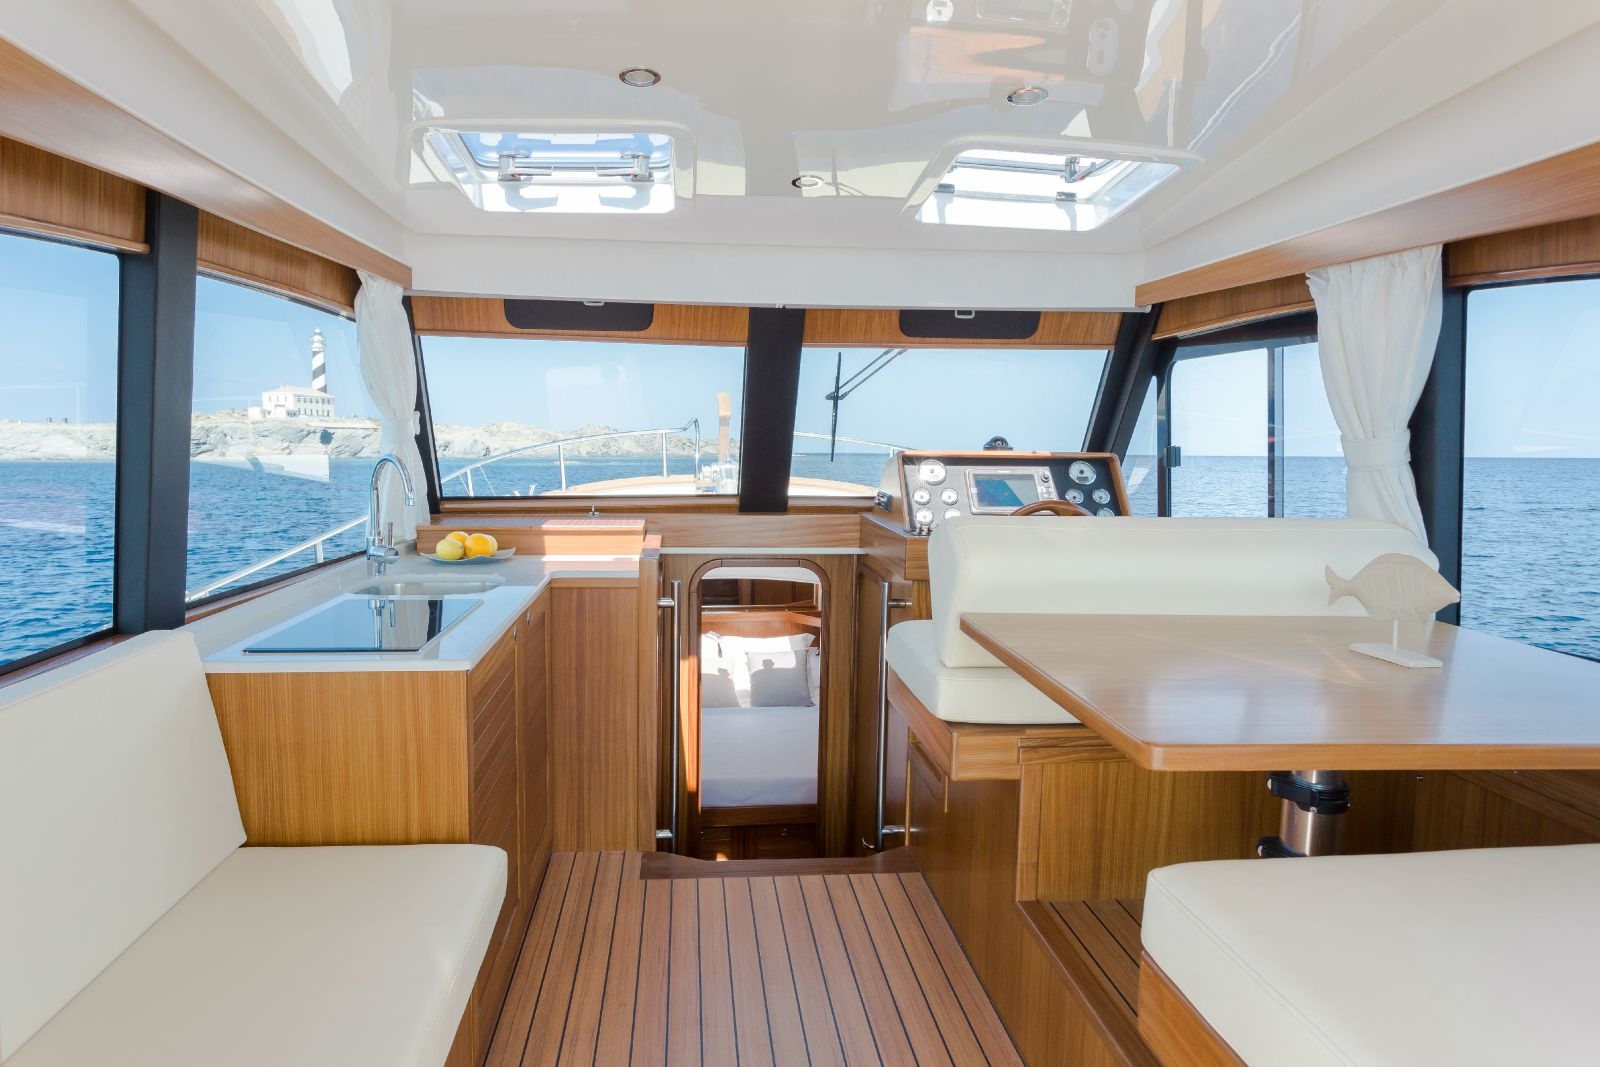 Minorca Islander 34 yacht for sale - Salon